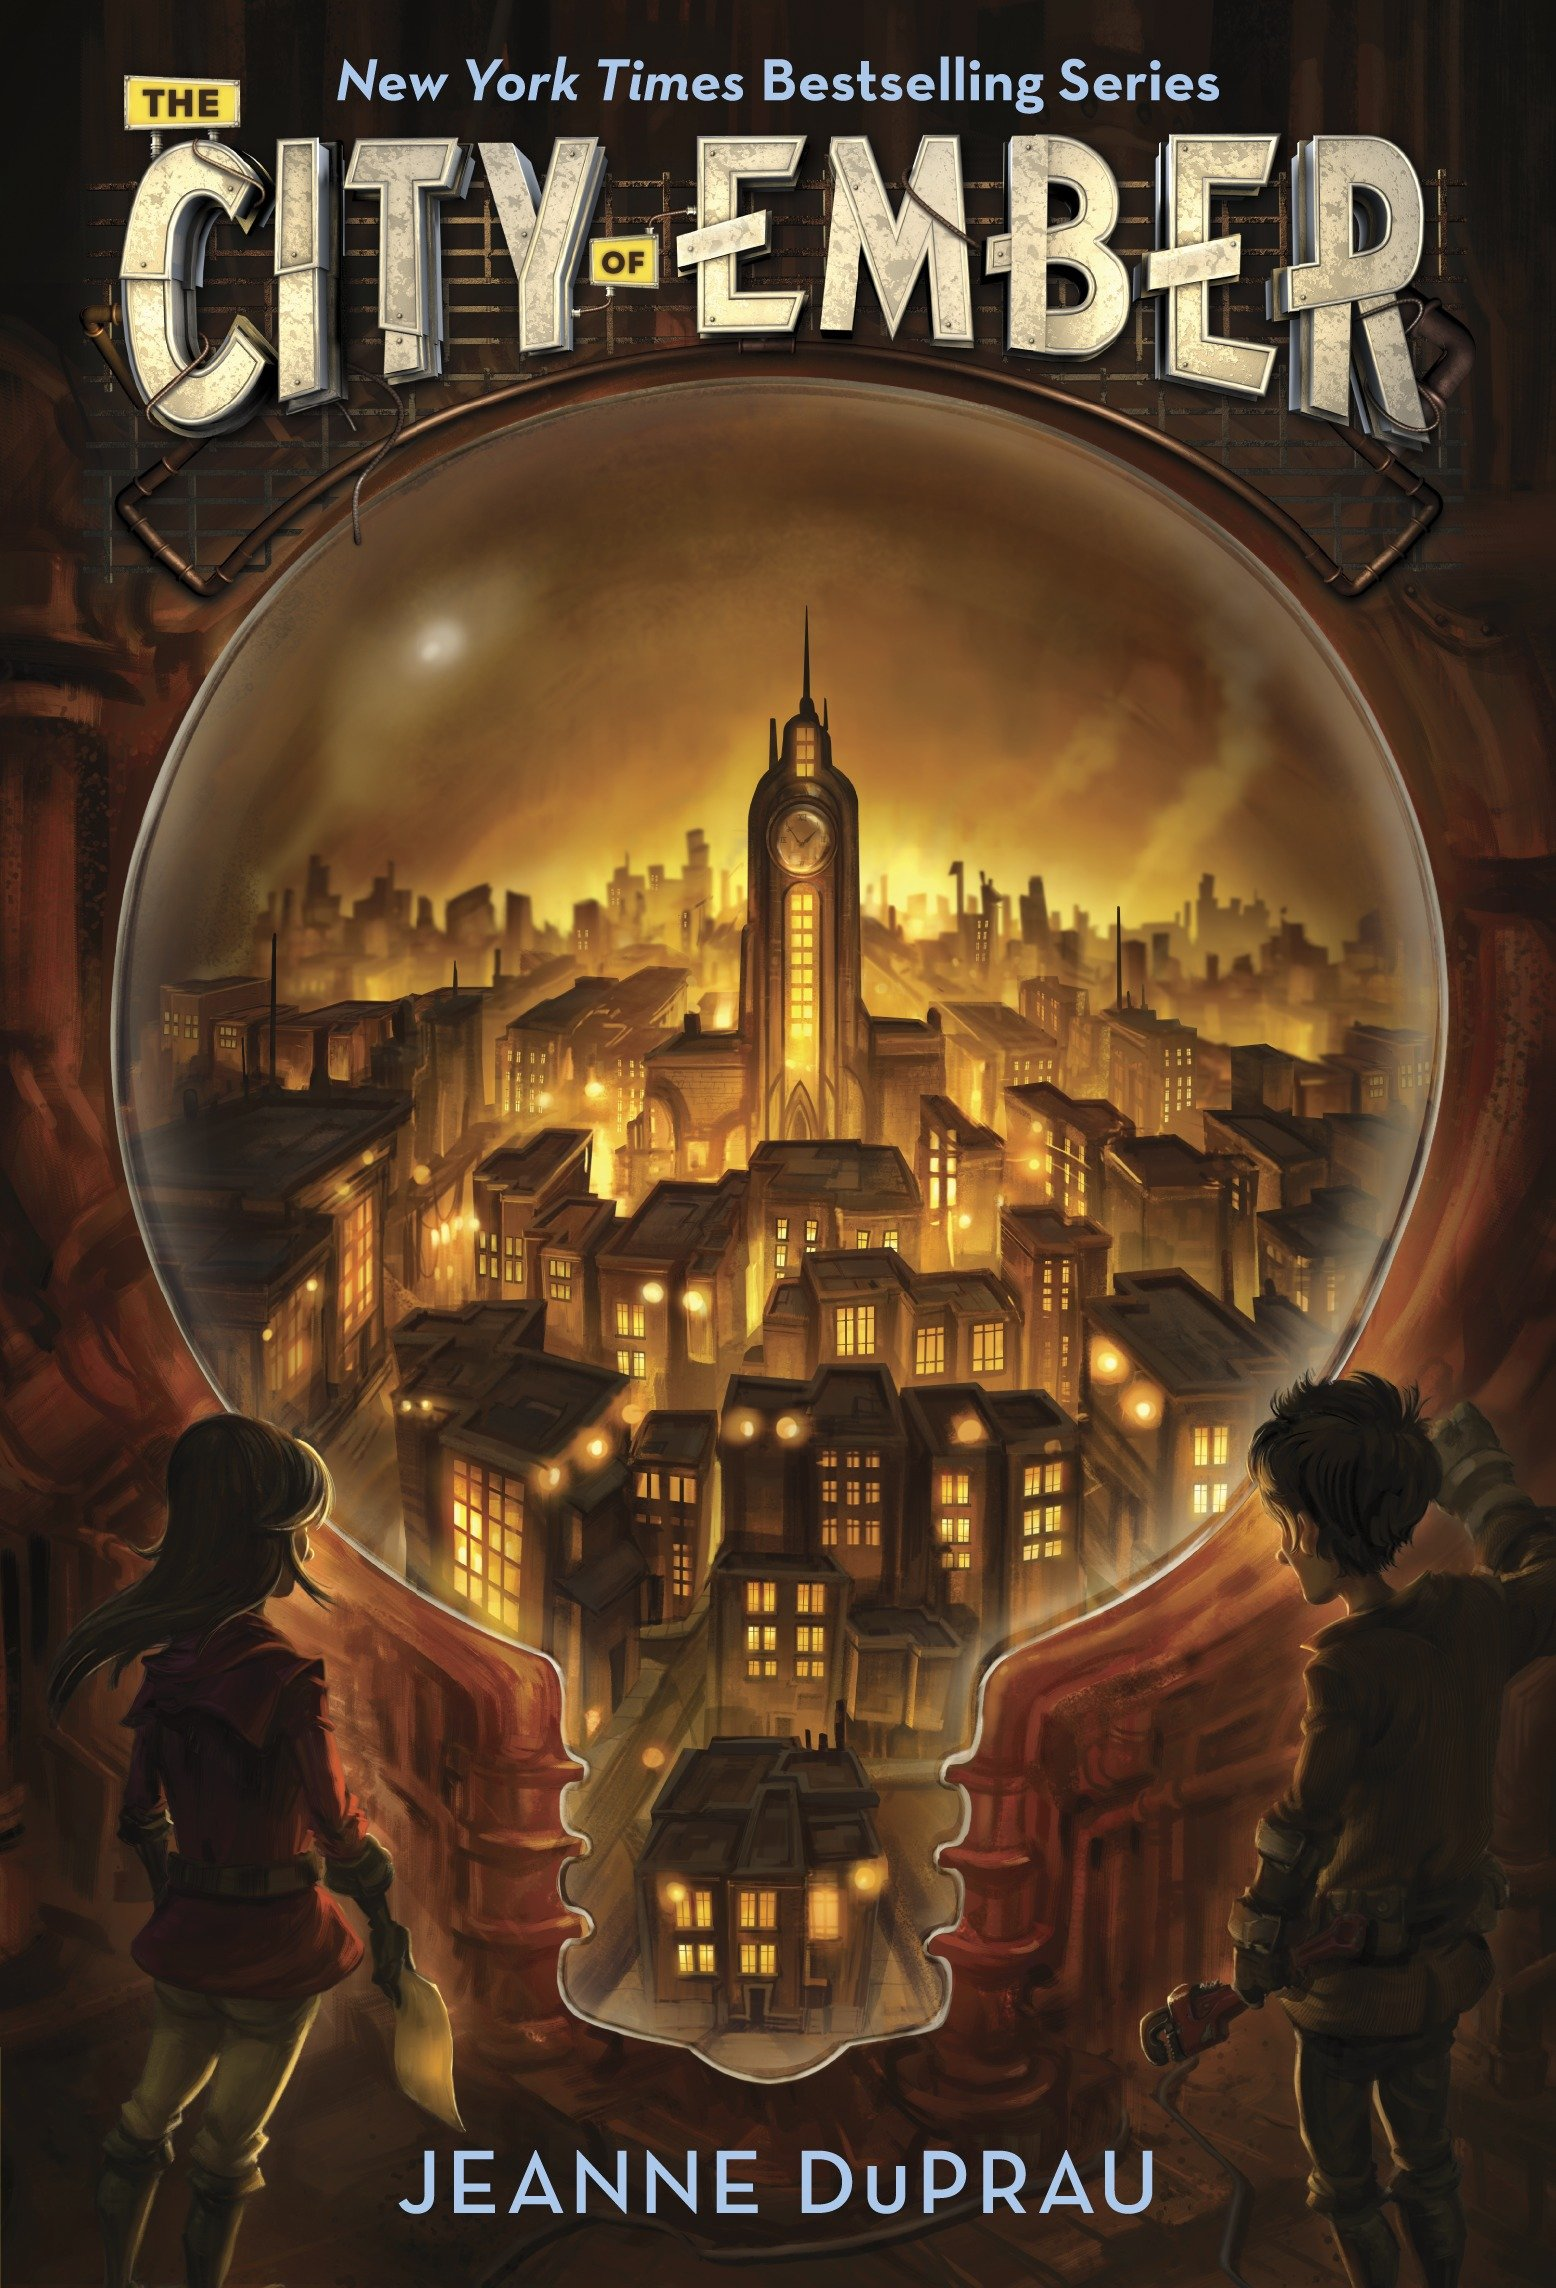 The city of Ember the first book of Ember cover image